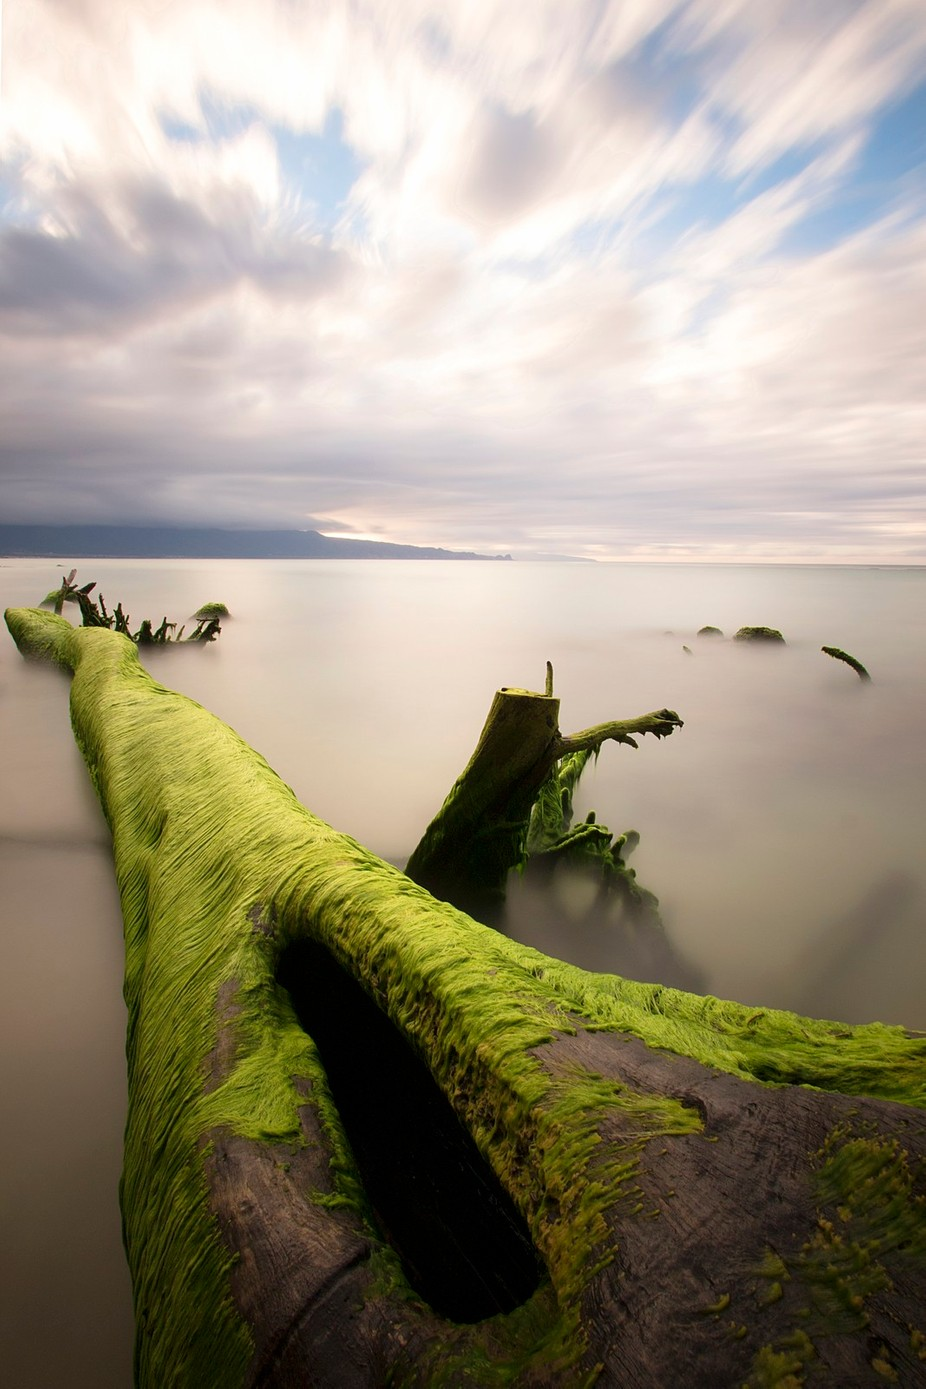 The Green Tree  by Stu_Soley - Fallen Trees Photo Contest